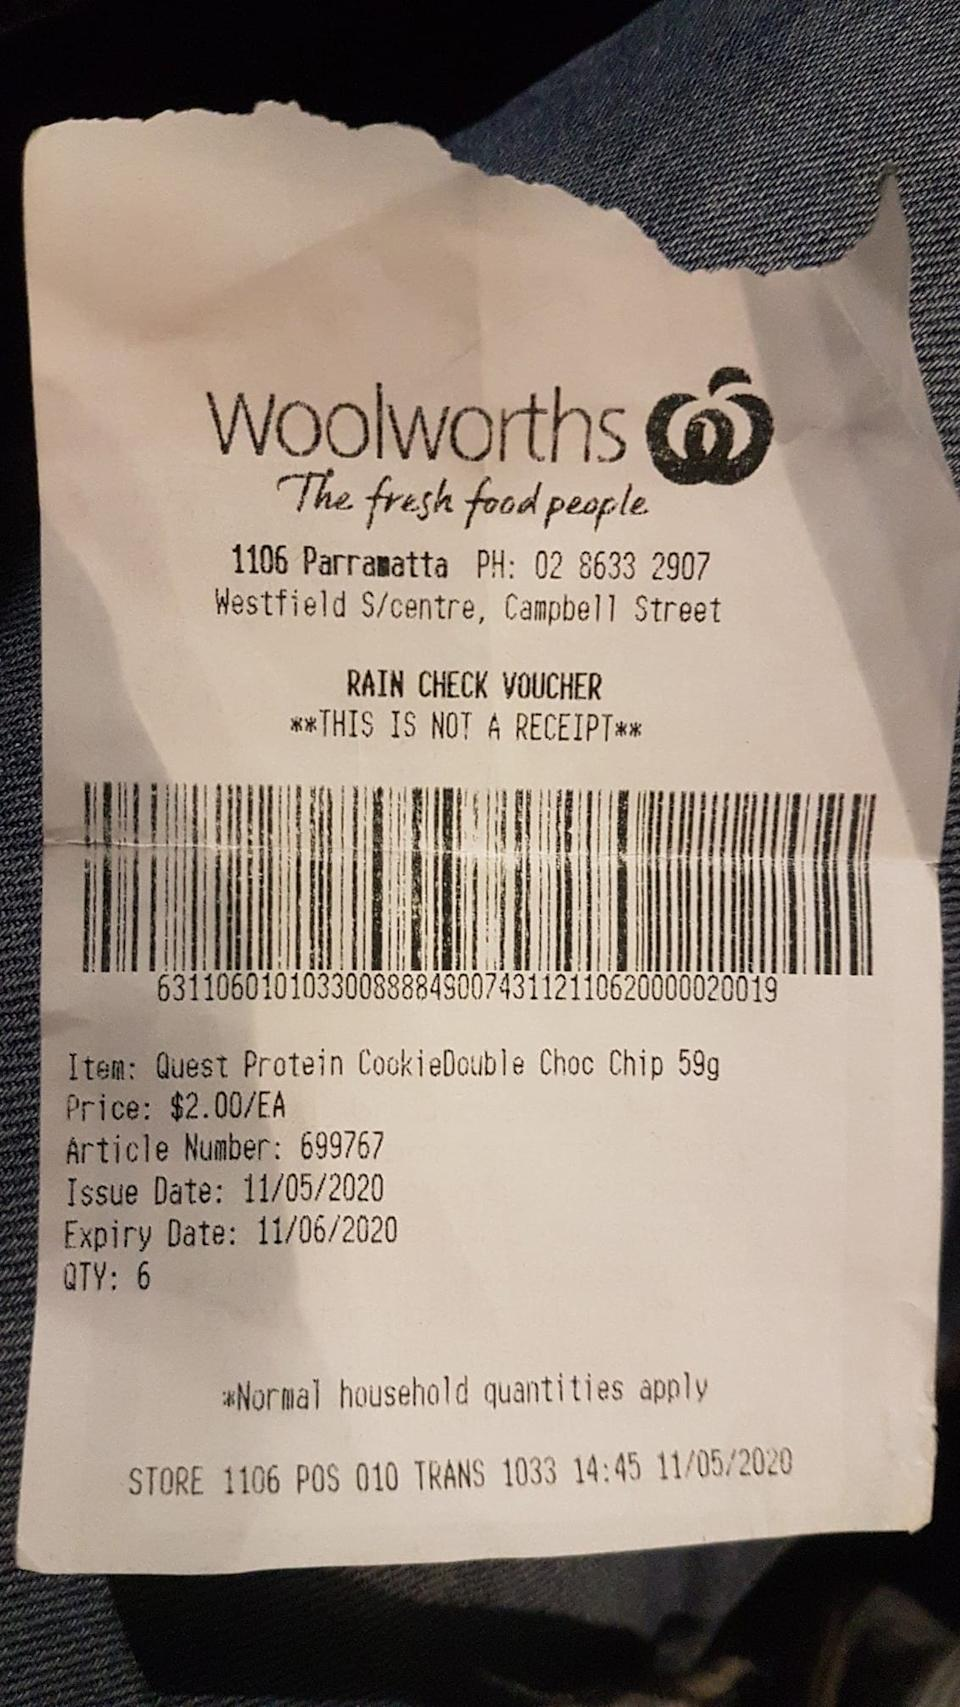 A rain check voucher is pictured from Woolworths for $12 worth of protein bars.